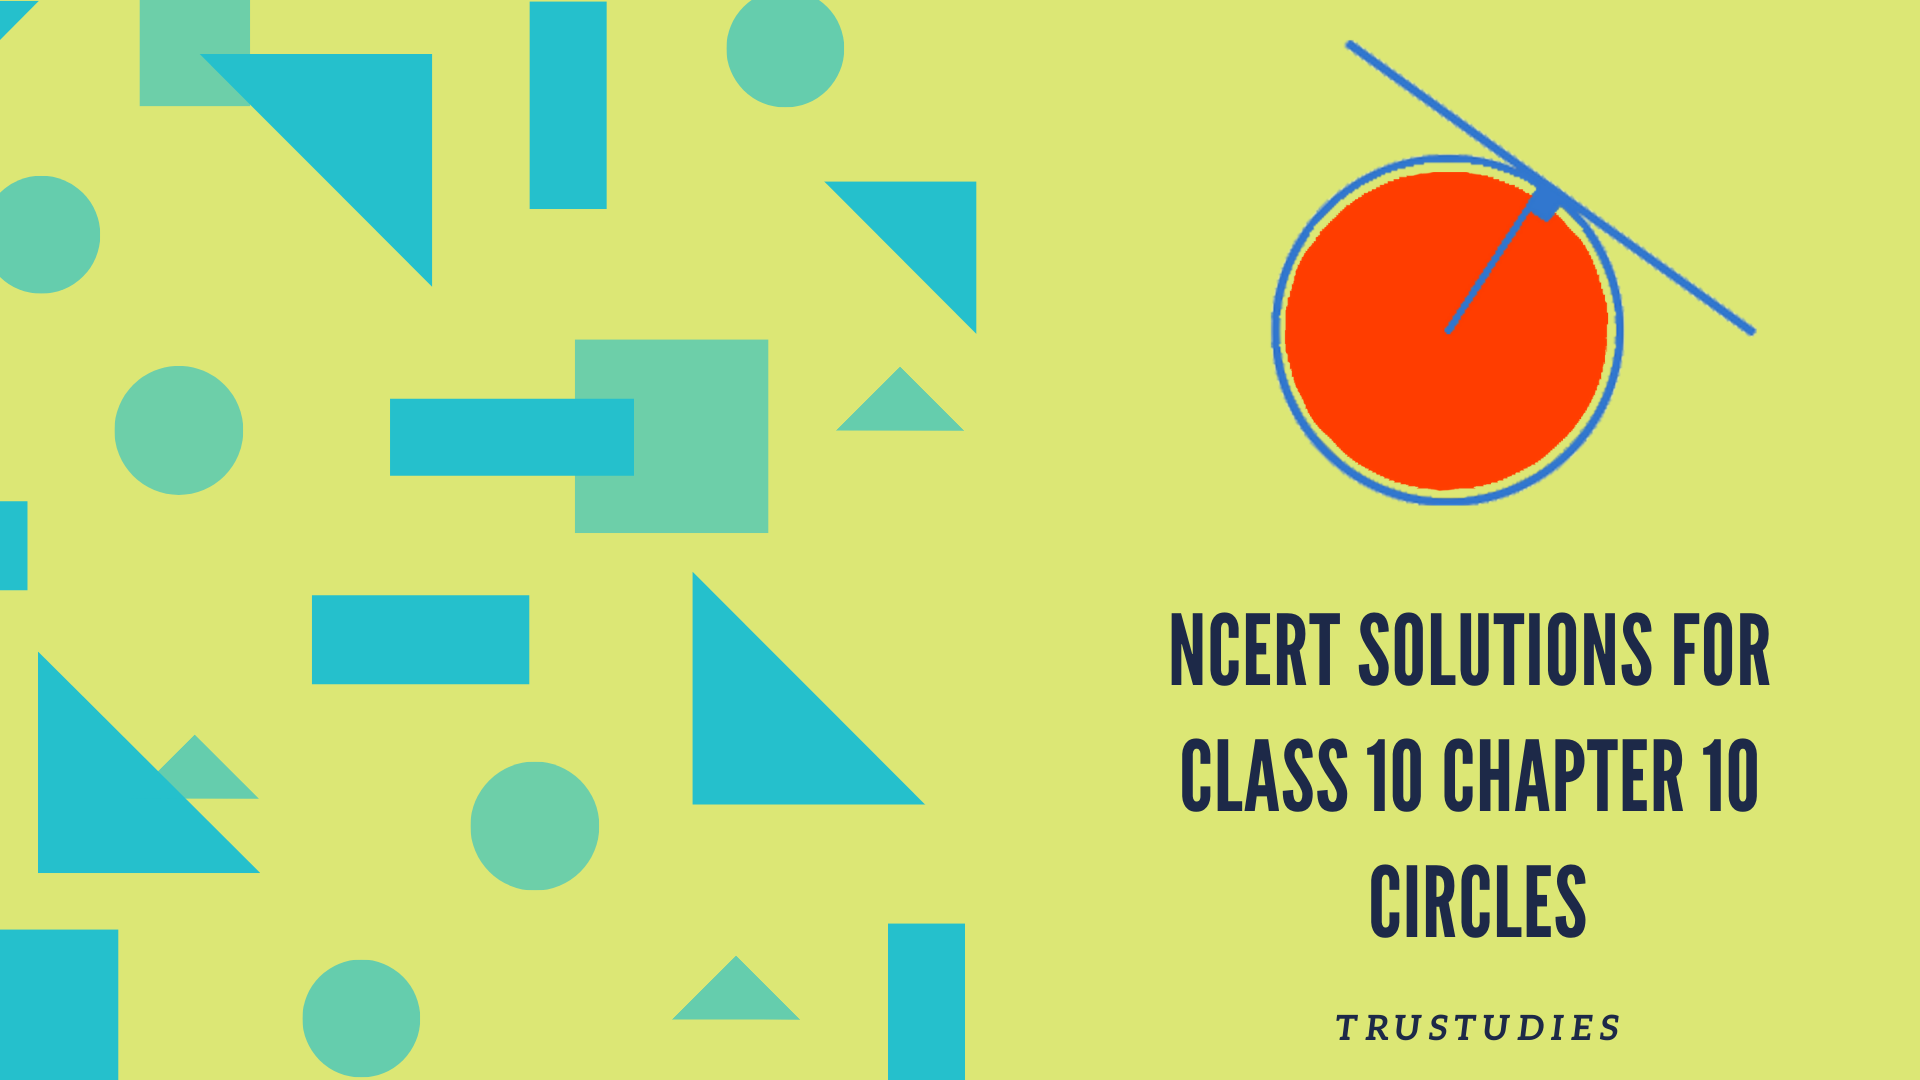 NCERT solutions for class 10 maths chapter 10 circles banner image